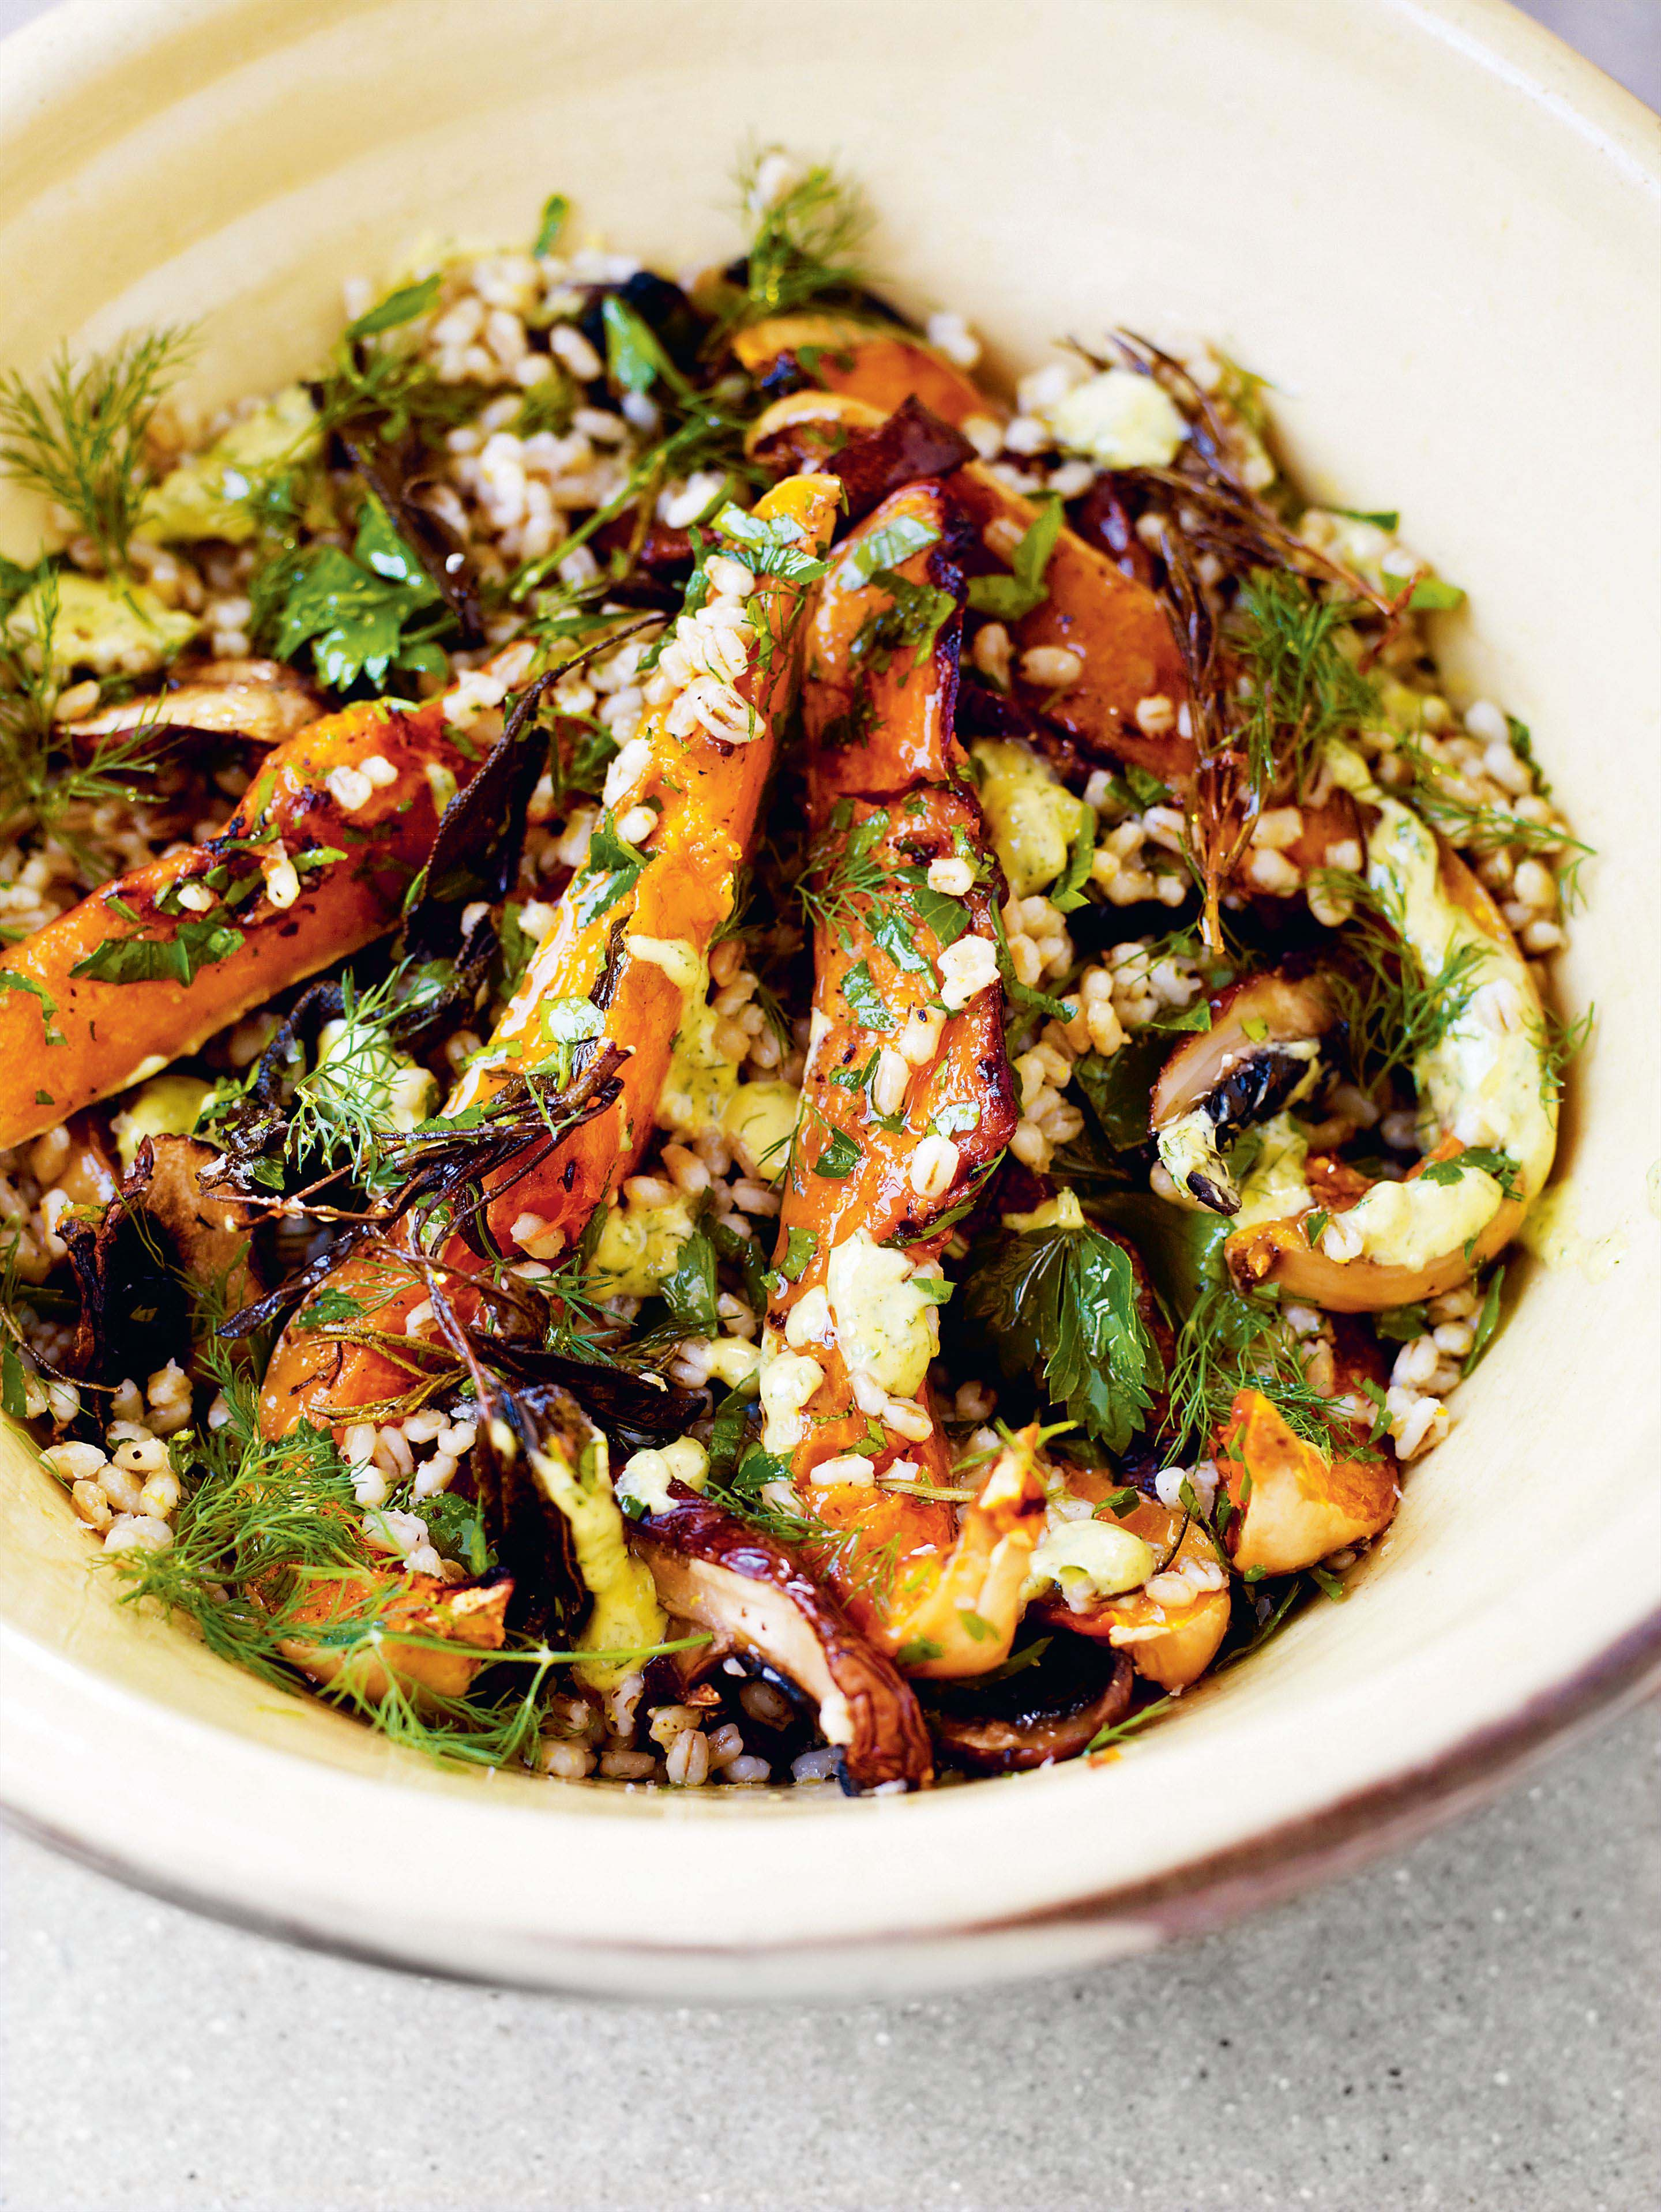 Barley, squash & mushrooms with herb & crème fraîche dressing